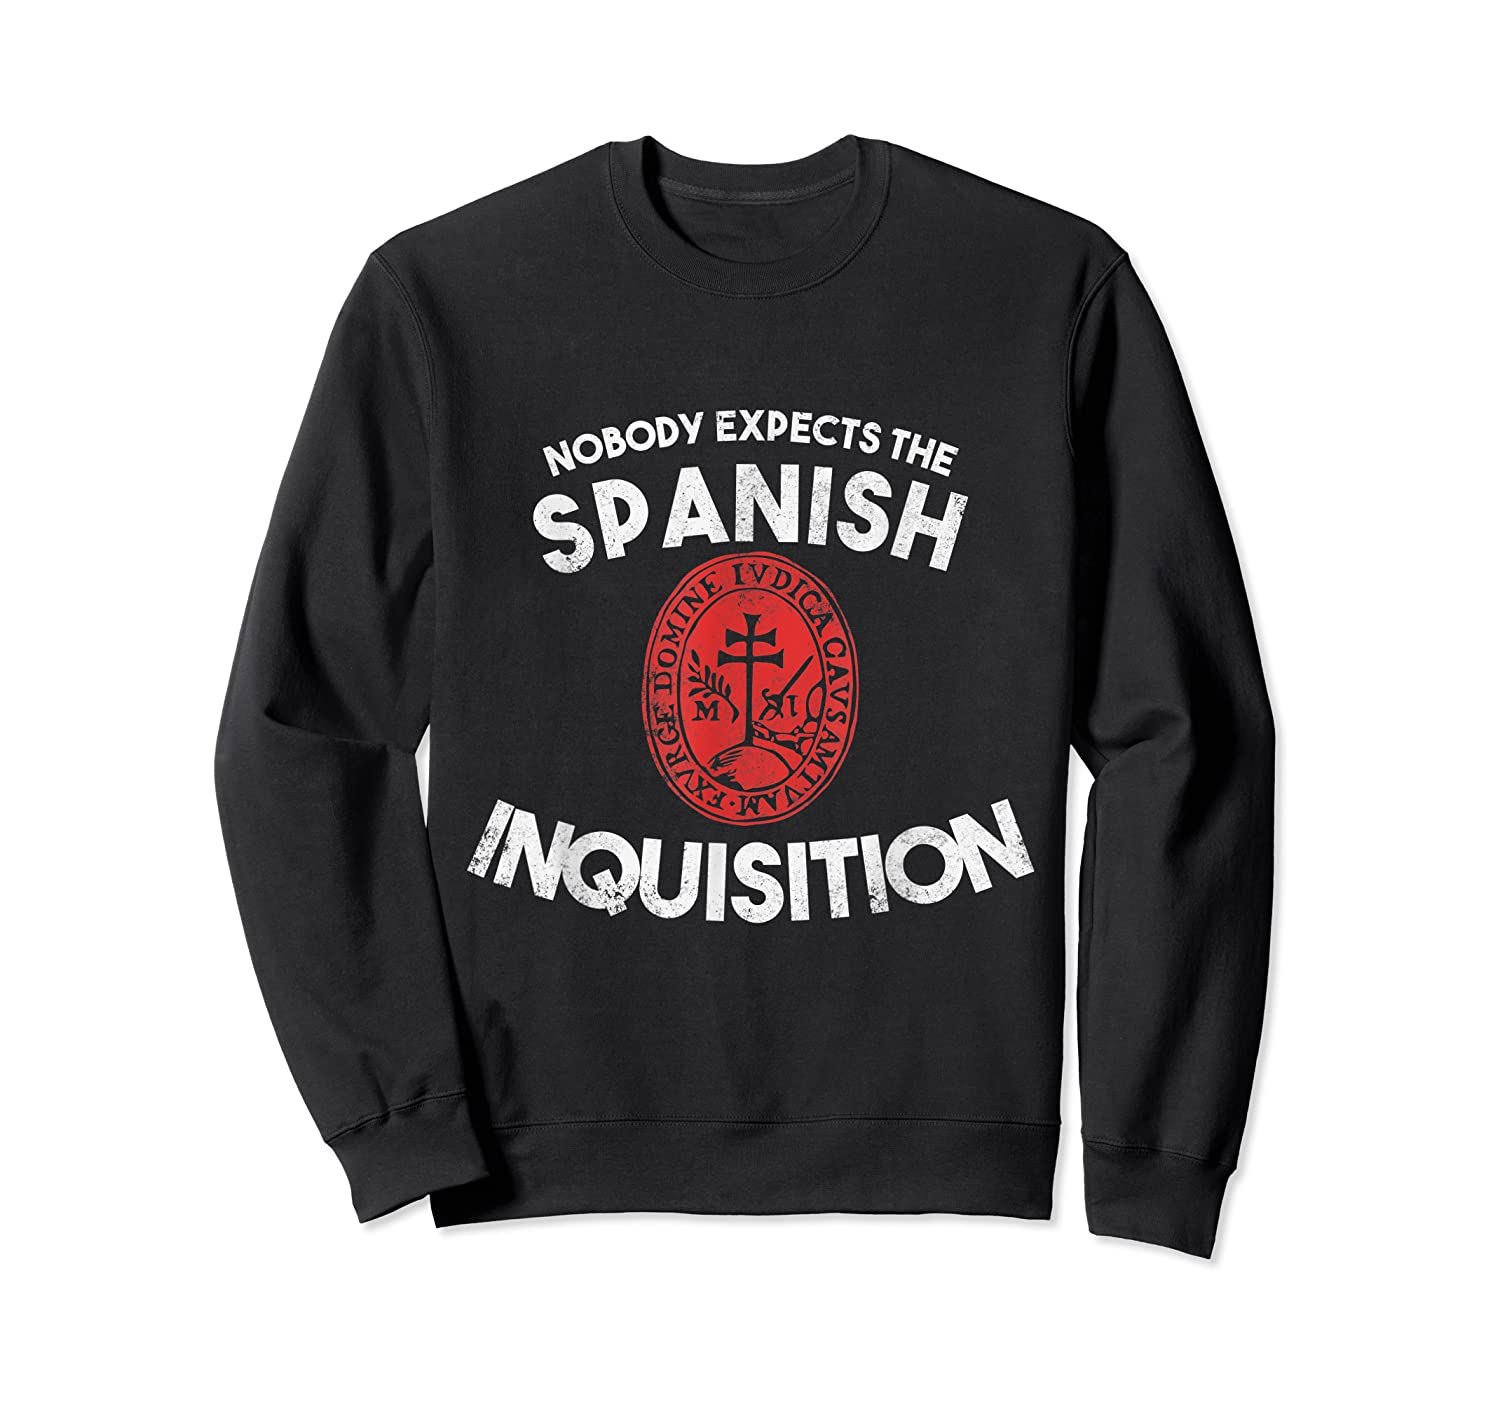 Nobody Expects The Spanish Inquisition T-shirt Funny Crewneck Sweater